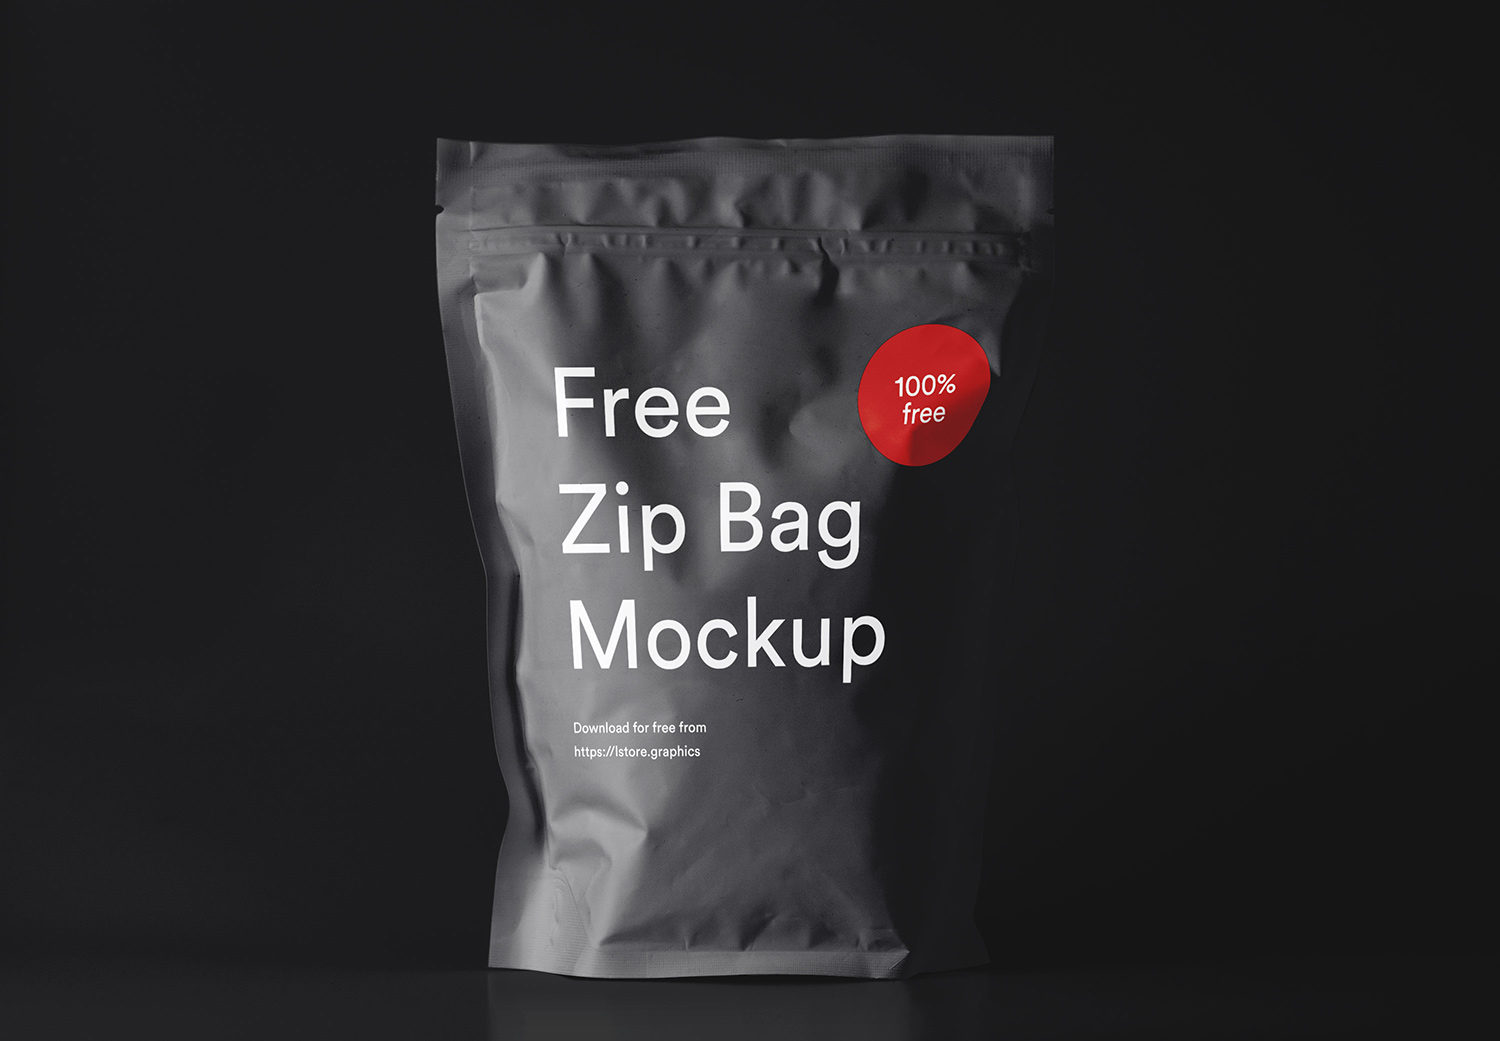 Free Zip Bag Pouch Package Mockup